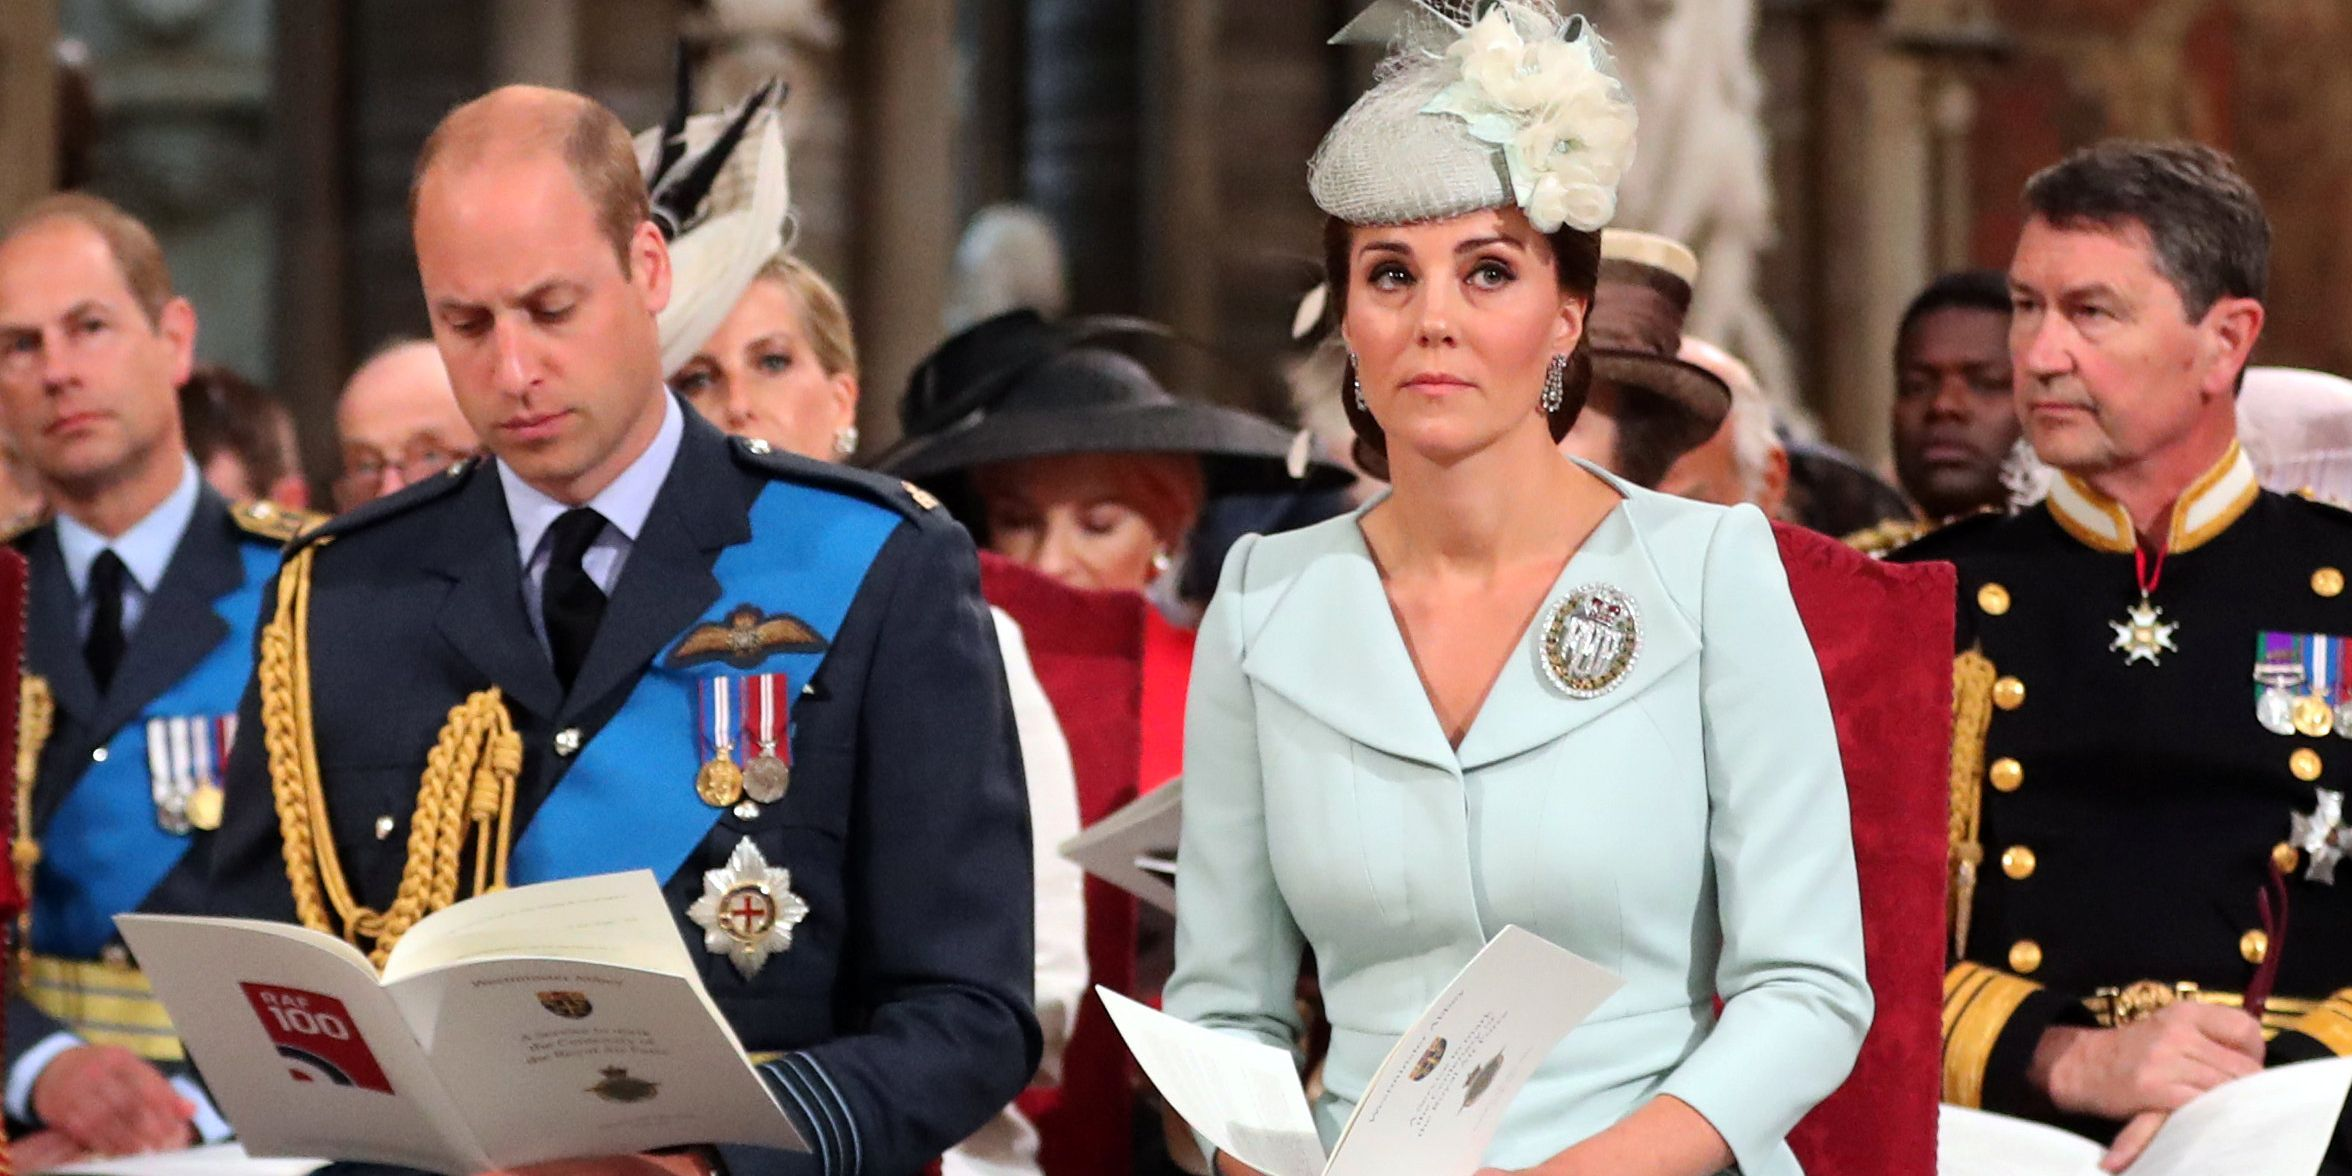 Prince William Opens Up About The Pain Of Losing His Mother In Touching Tribute To Princess Diana